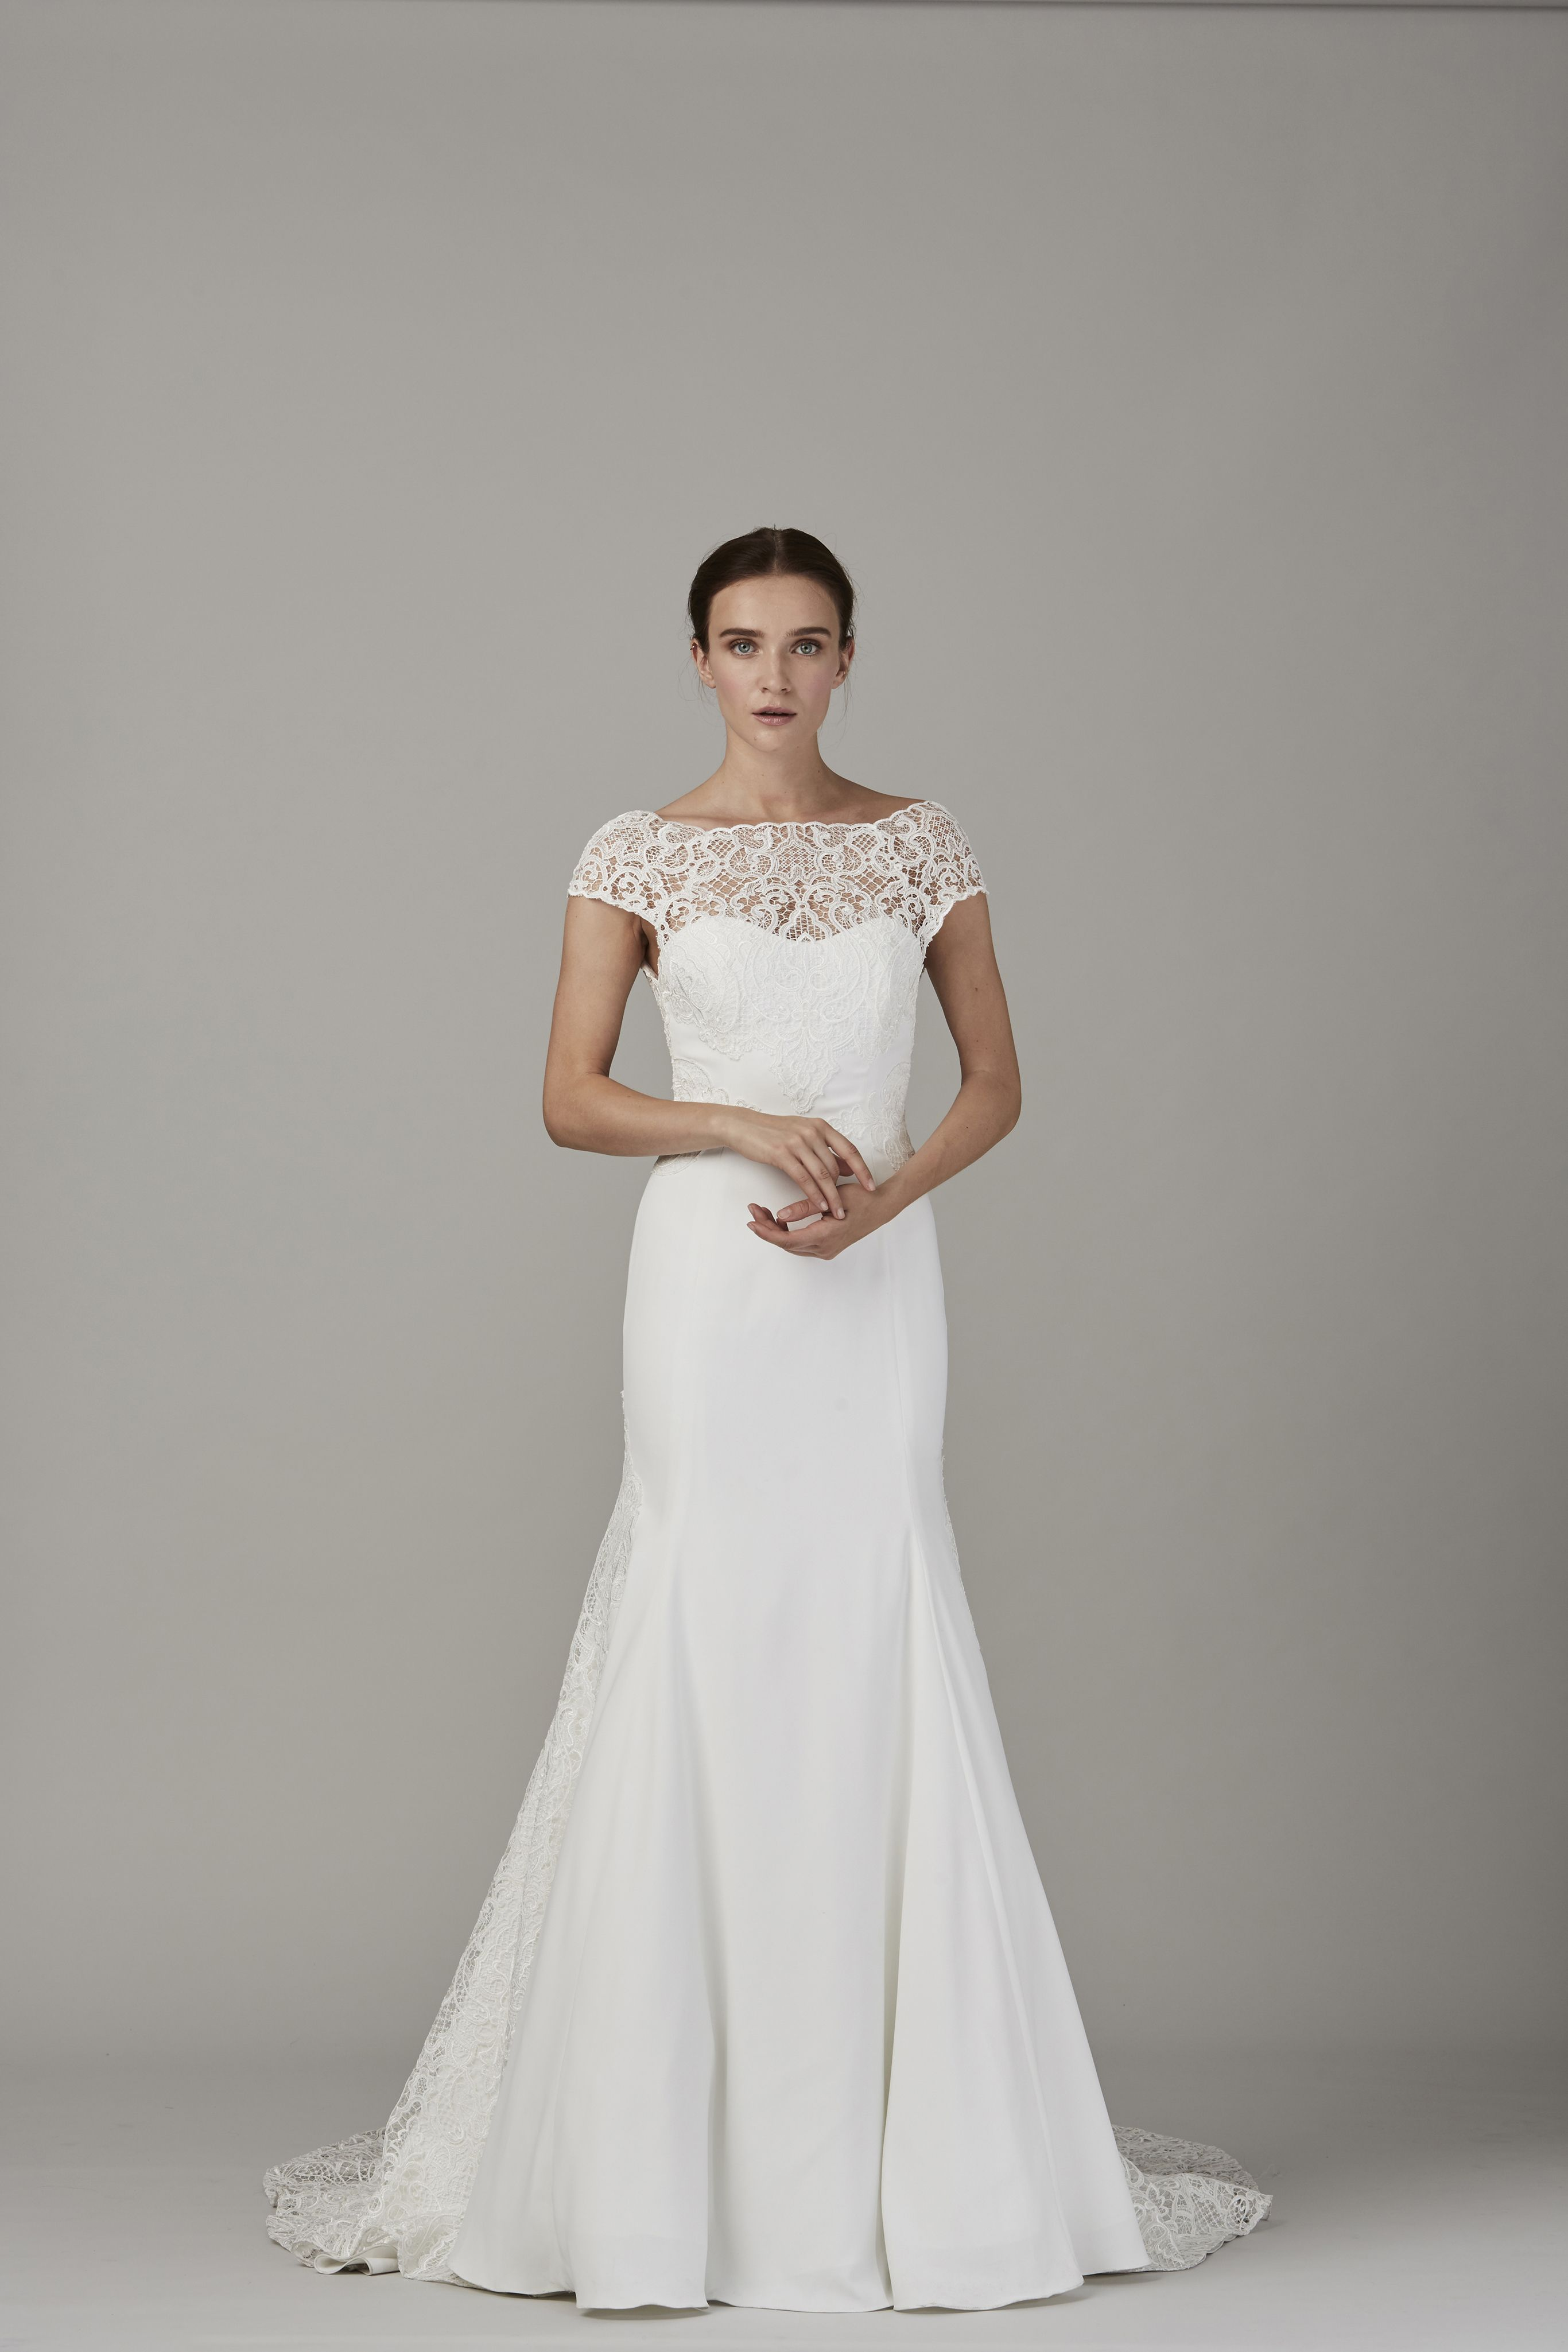 Strapless fitted lace wedding dresses  Mermaid strapless wedding dress Fitted wedding dresses with lace